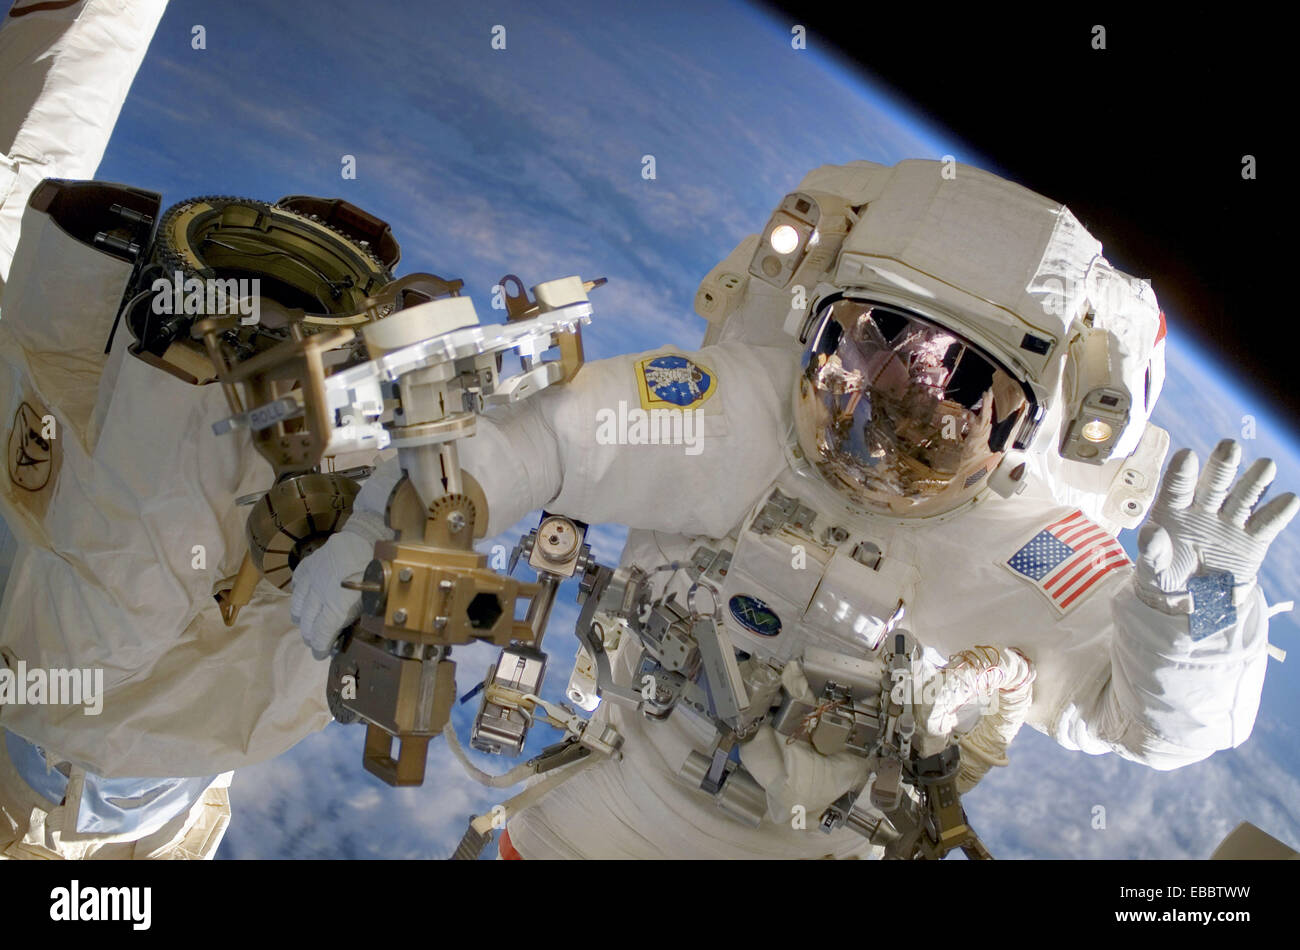 (23 July 2007) --- Astronaut Clay Anderson, Expedition 15 flight engineer, waves to the camera while participating - Stock Image